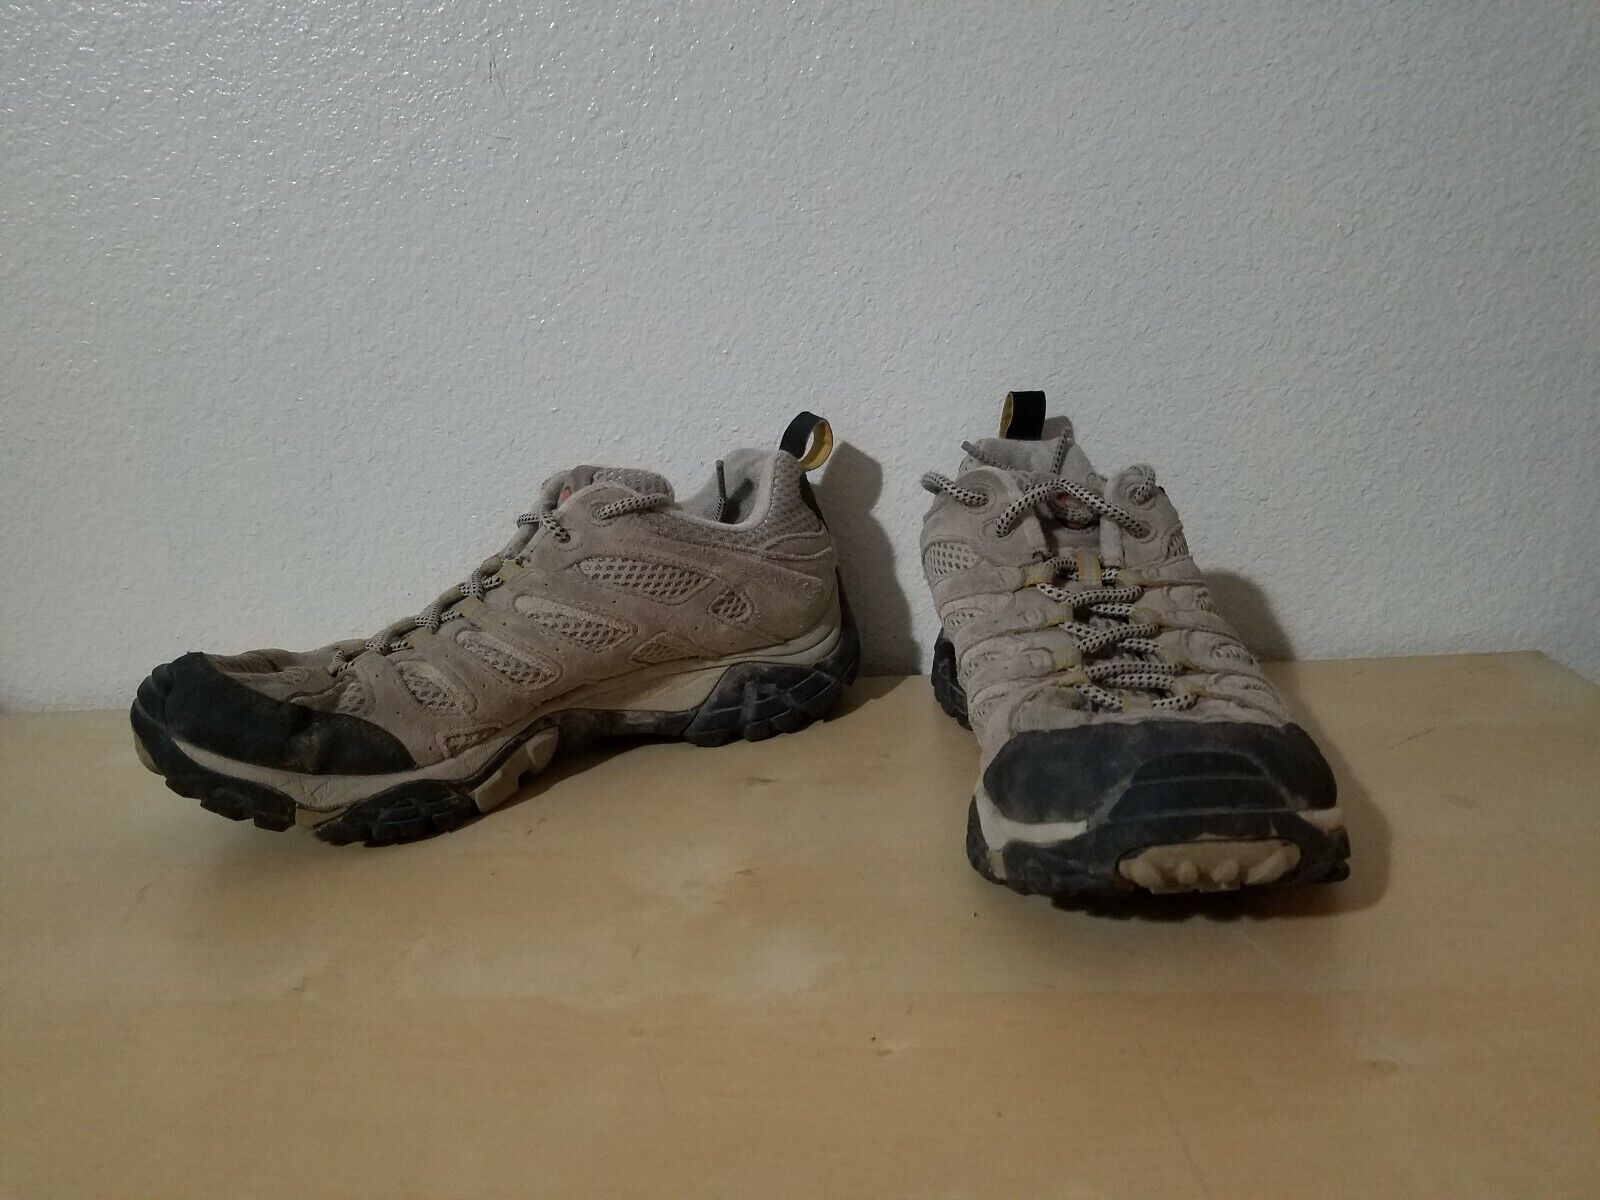 MERRELL  MOAB VENTILATOR Size 9.5 Hiking Boots shoes Taupe